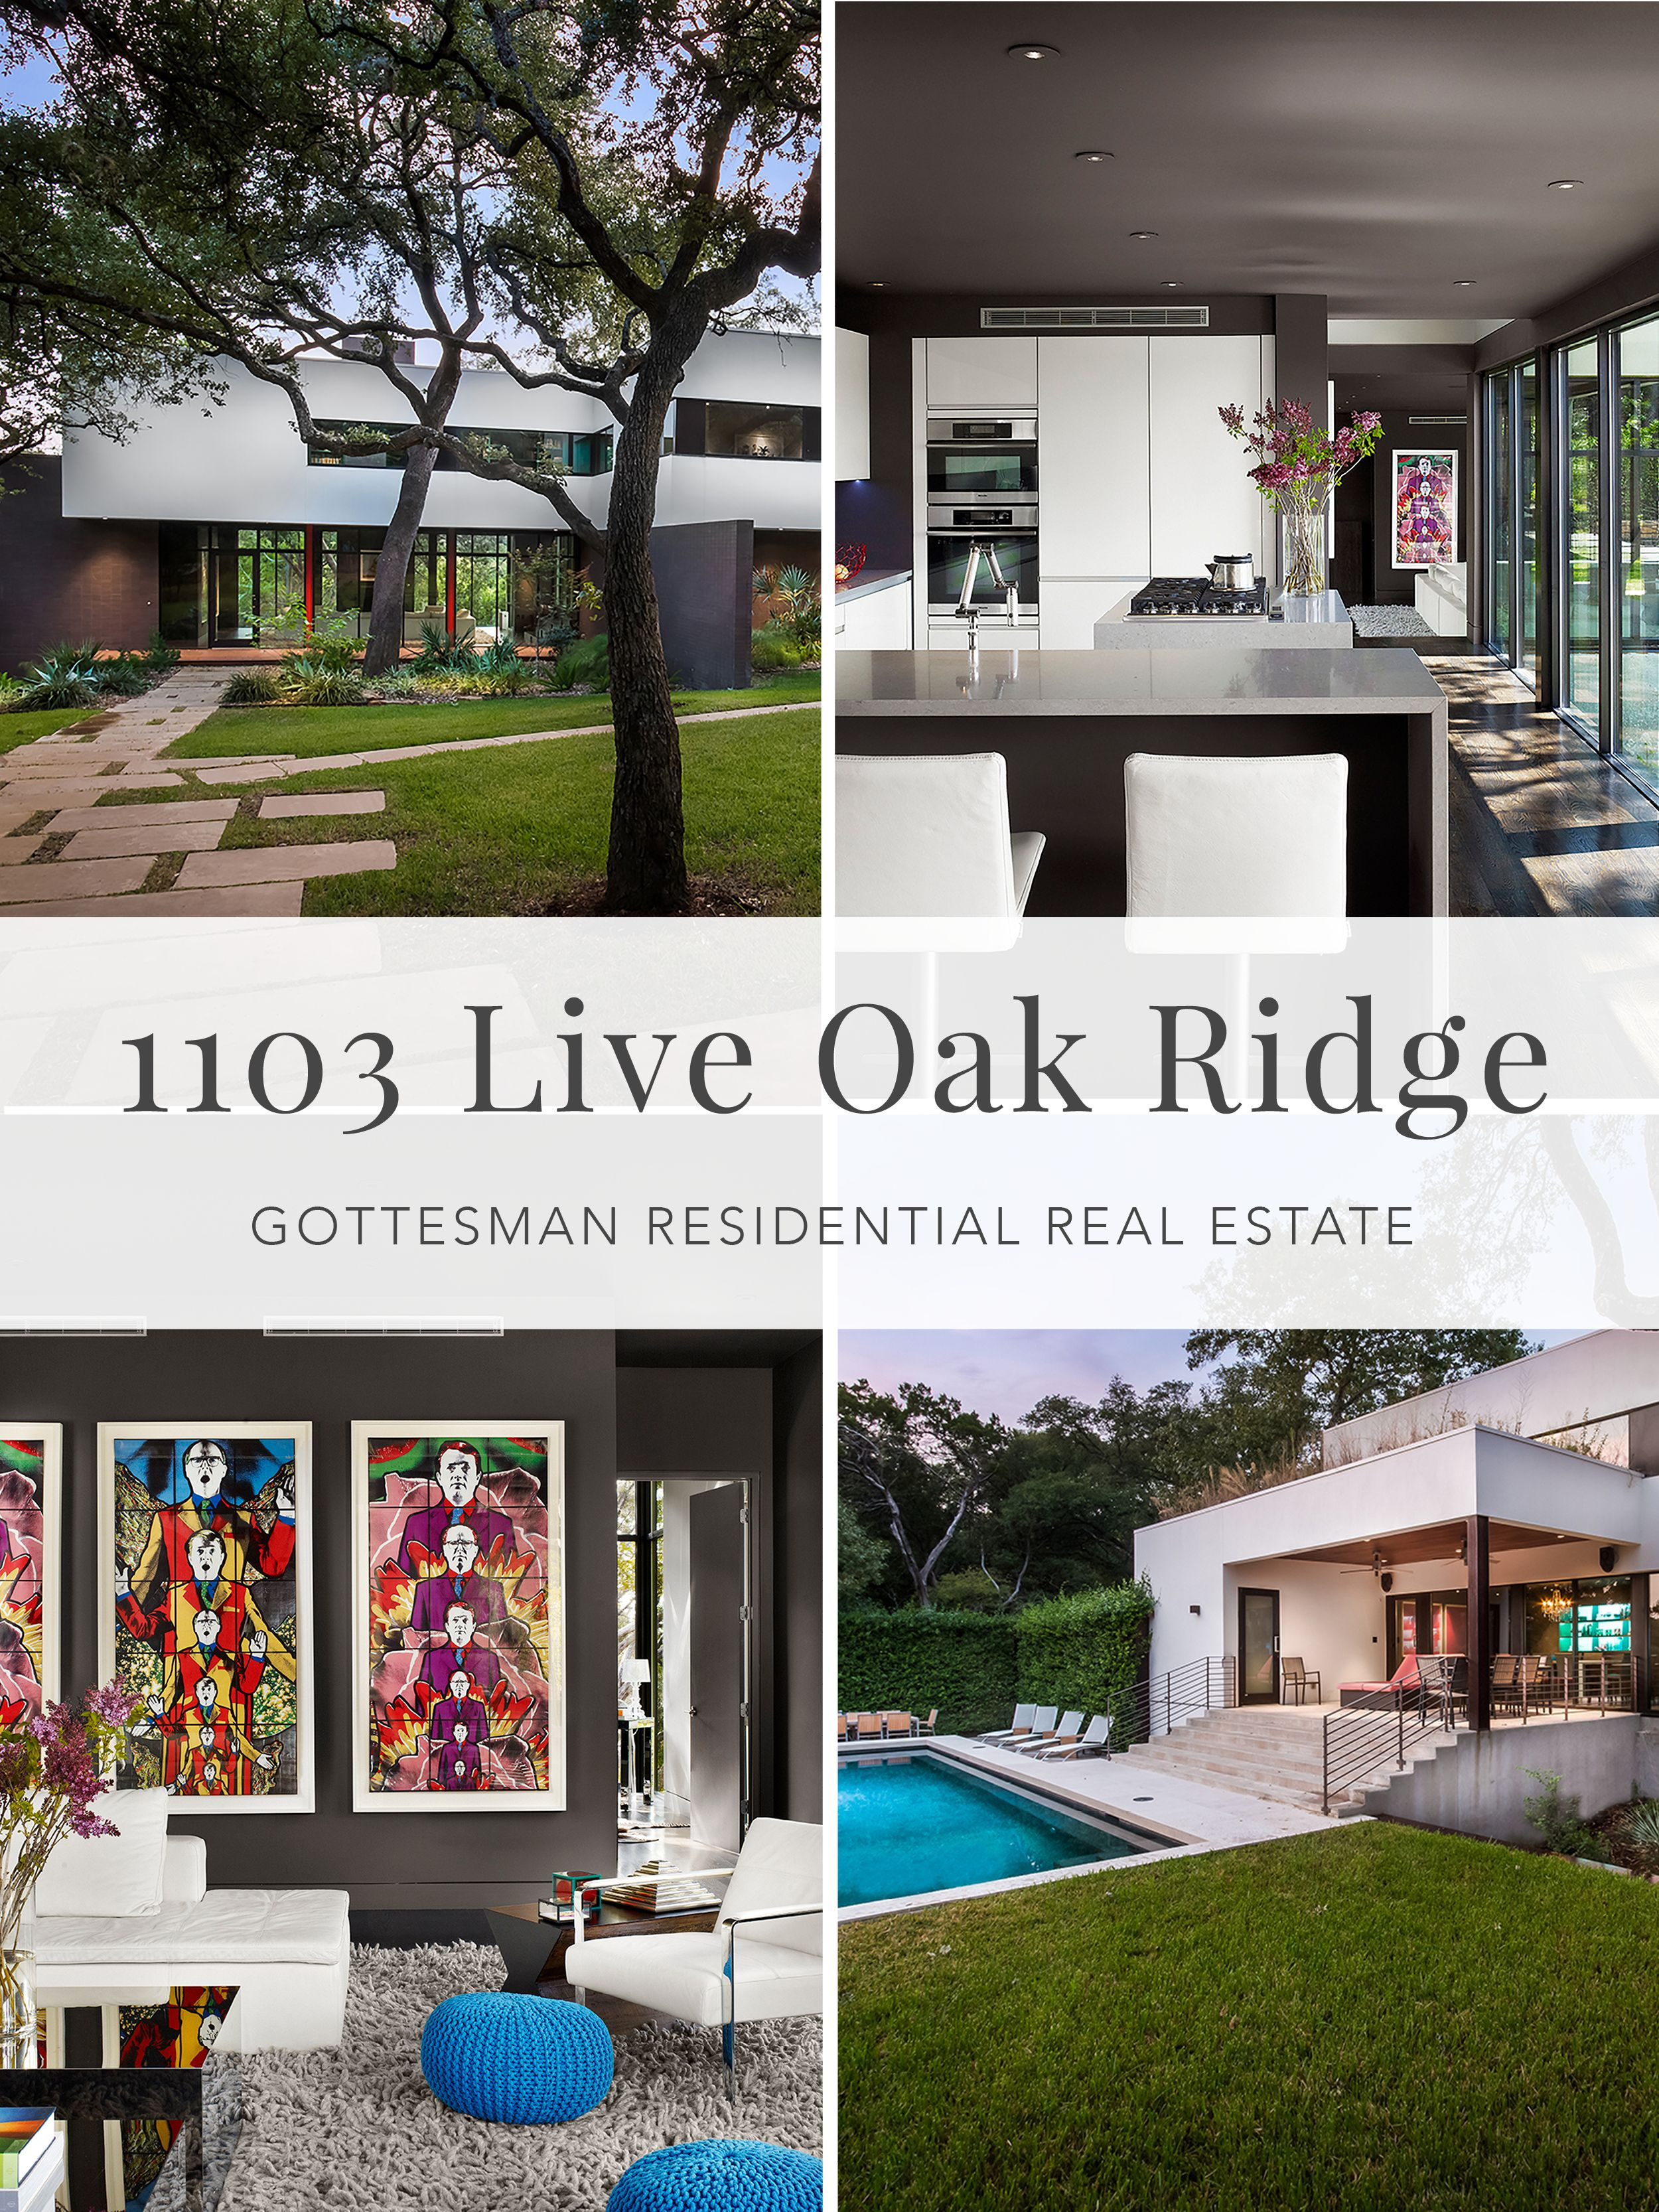 1103 Live Oak Ridge Gottesman Residential Real Estate Built In 2009 The Exquisite Custom Home Heart Of Westlake Hills Was Brilliantly Created By